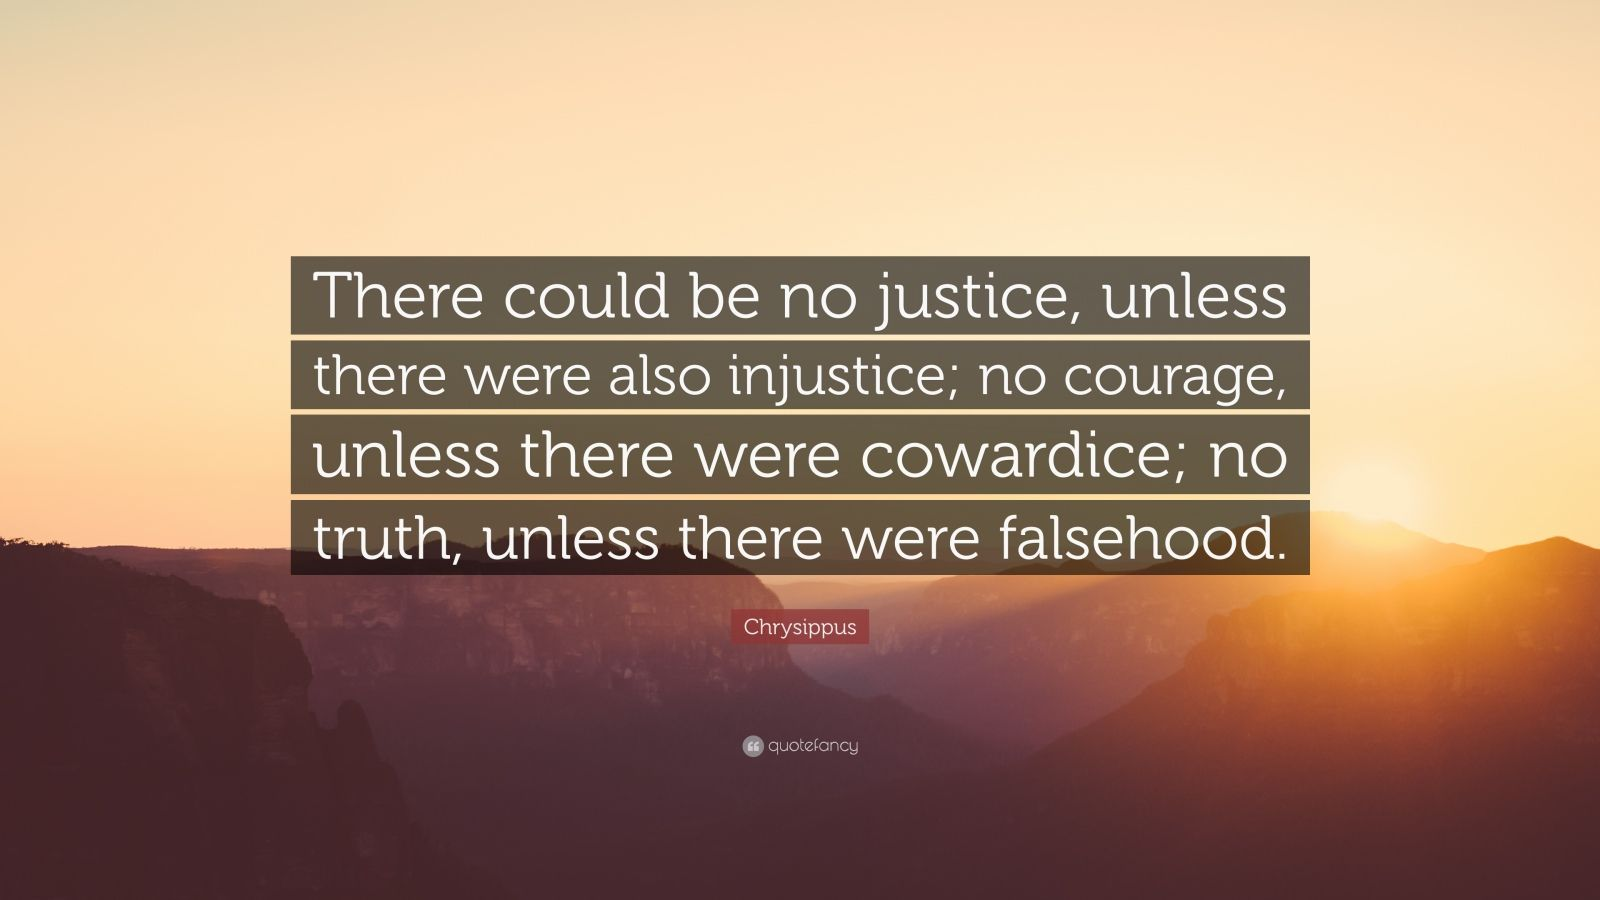 """Chrysippus Quote: """"There could be no justice, unless there were also injustice; no courage, unless there were cowardice; no truth, unless there were falsehood."""""""